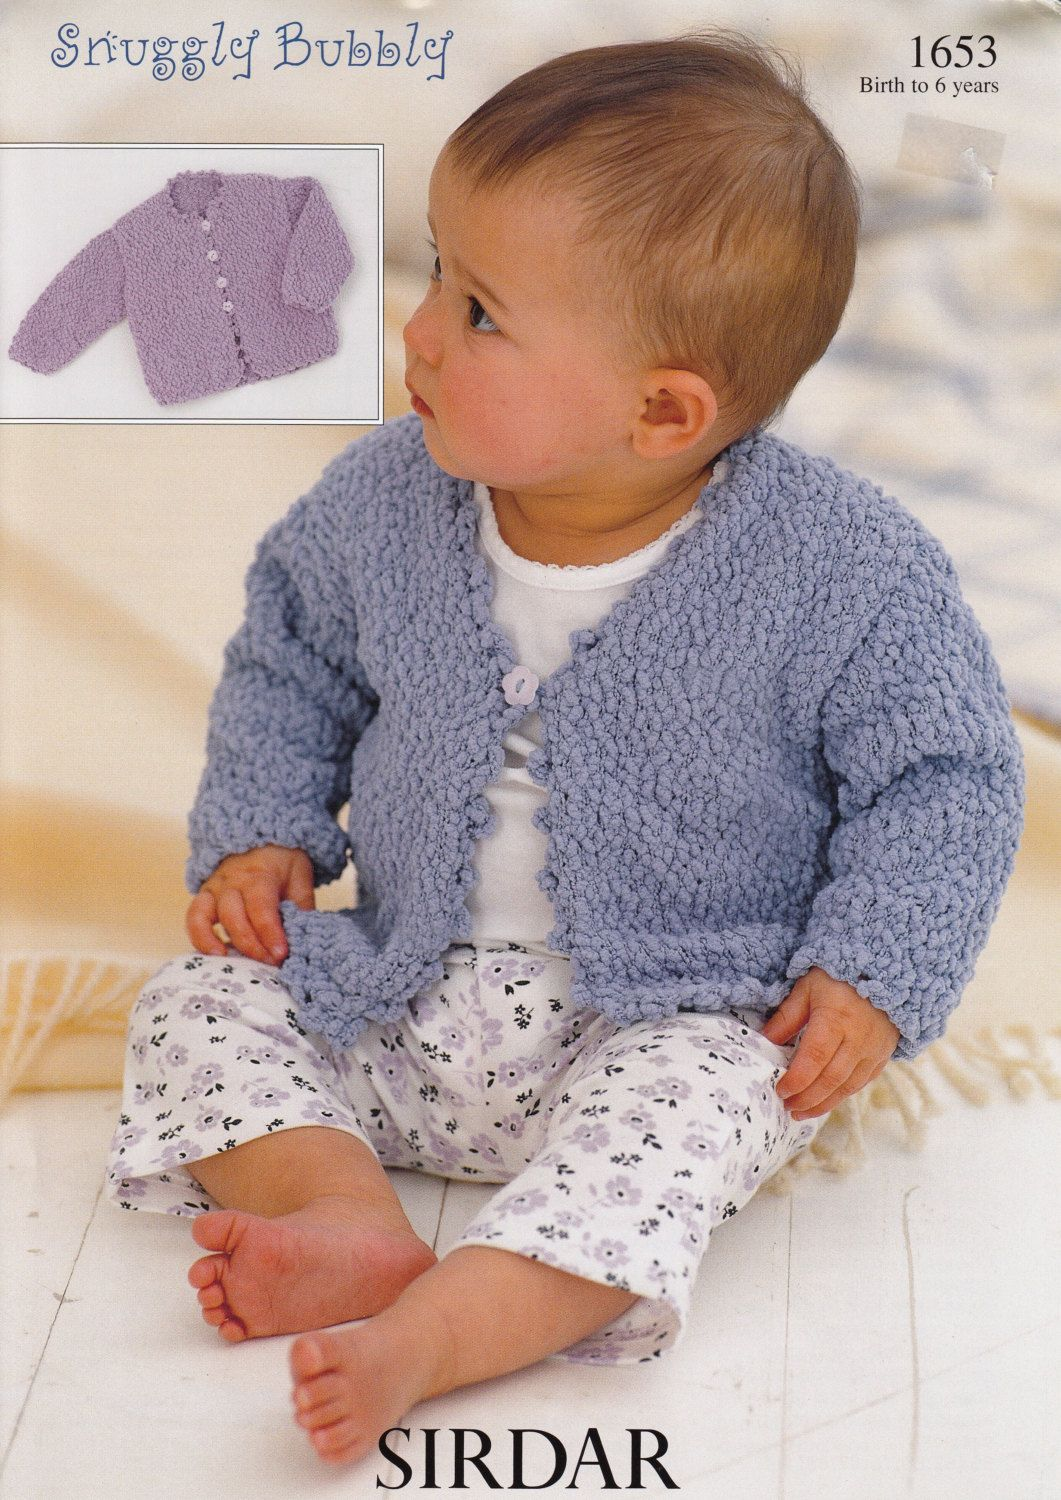 Baby sweater knitting pattern sirdar snuggly bubbly 1653 baby baby sweater knitting pattern sirdar snuggly bubbly 1653 baby cardigan knitting pattern knit bankloansurffo Image collections